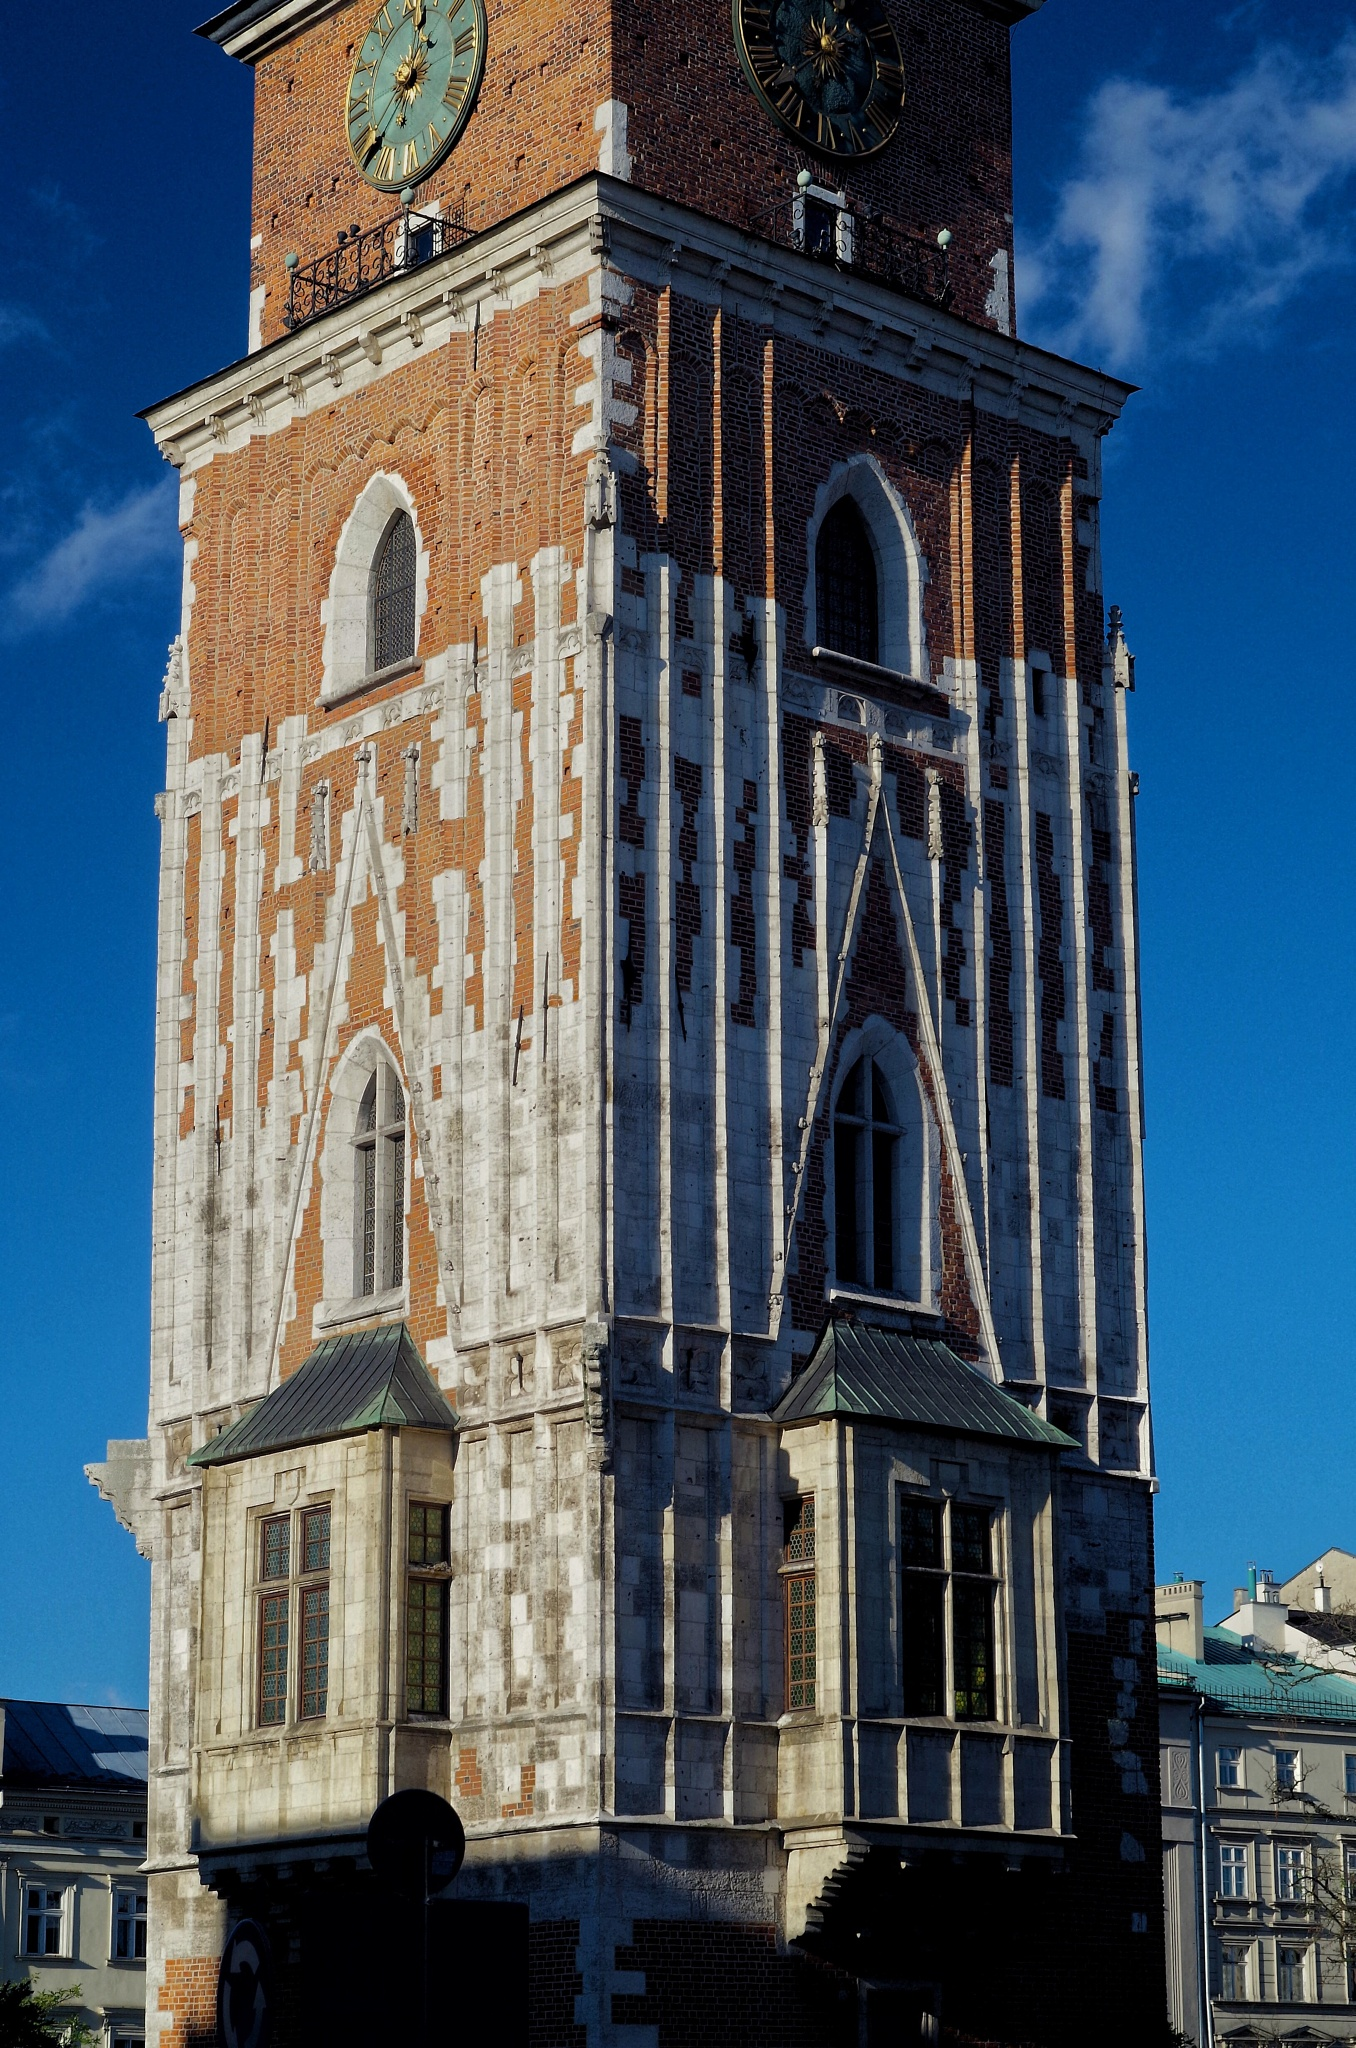 City Hall Tower in Cracow  by Paweł